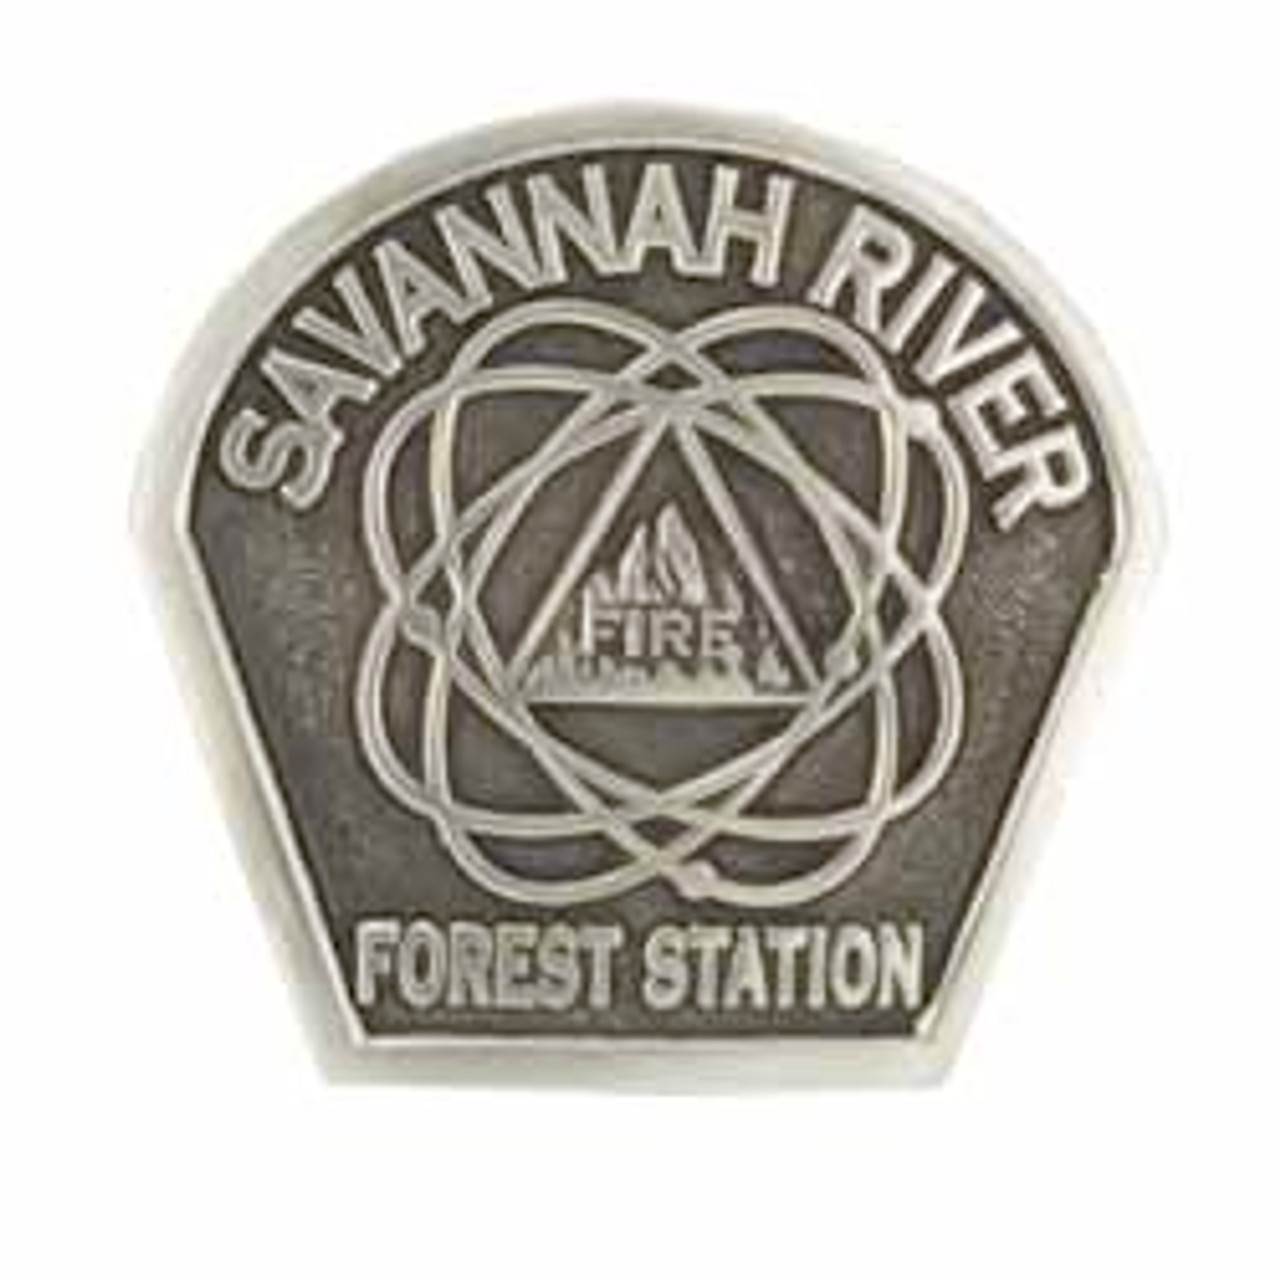 Savannah River Forest Station Buckle